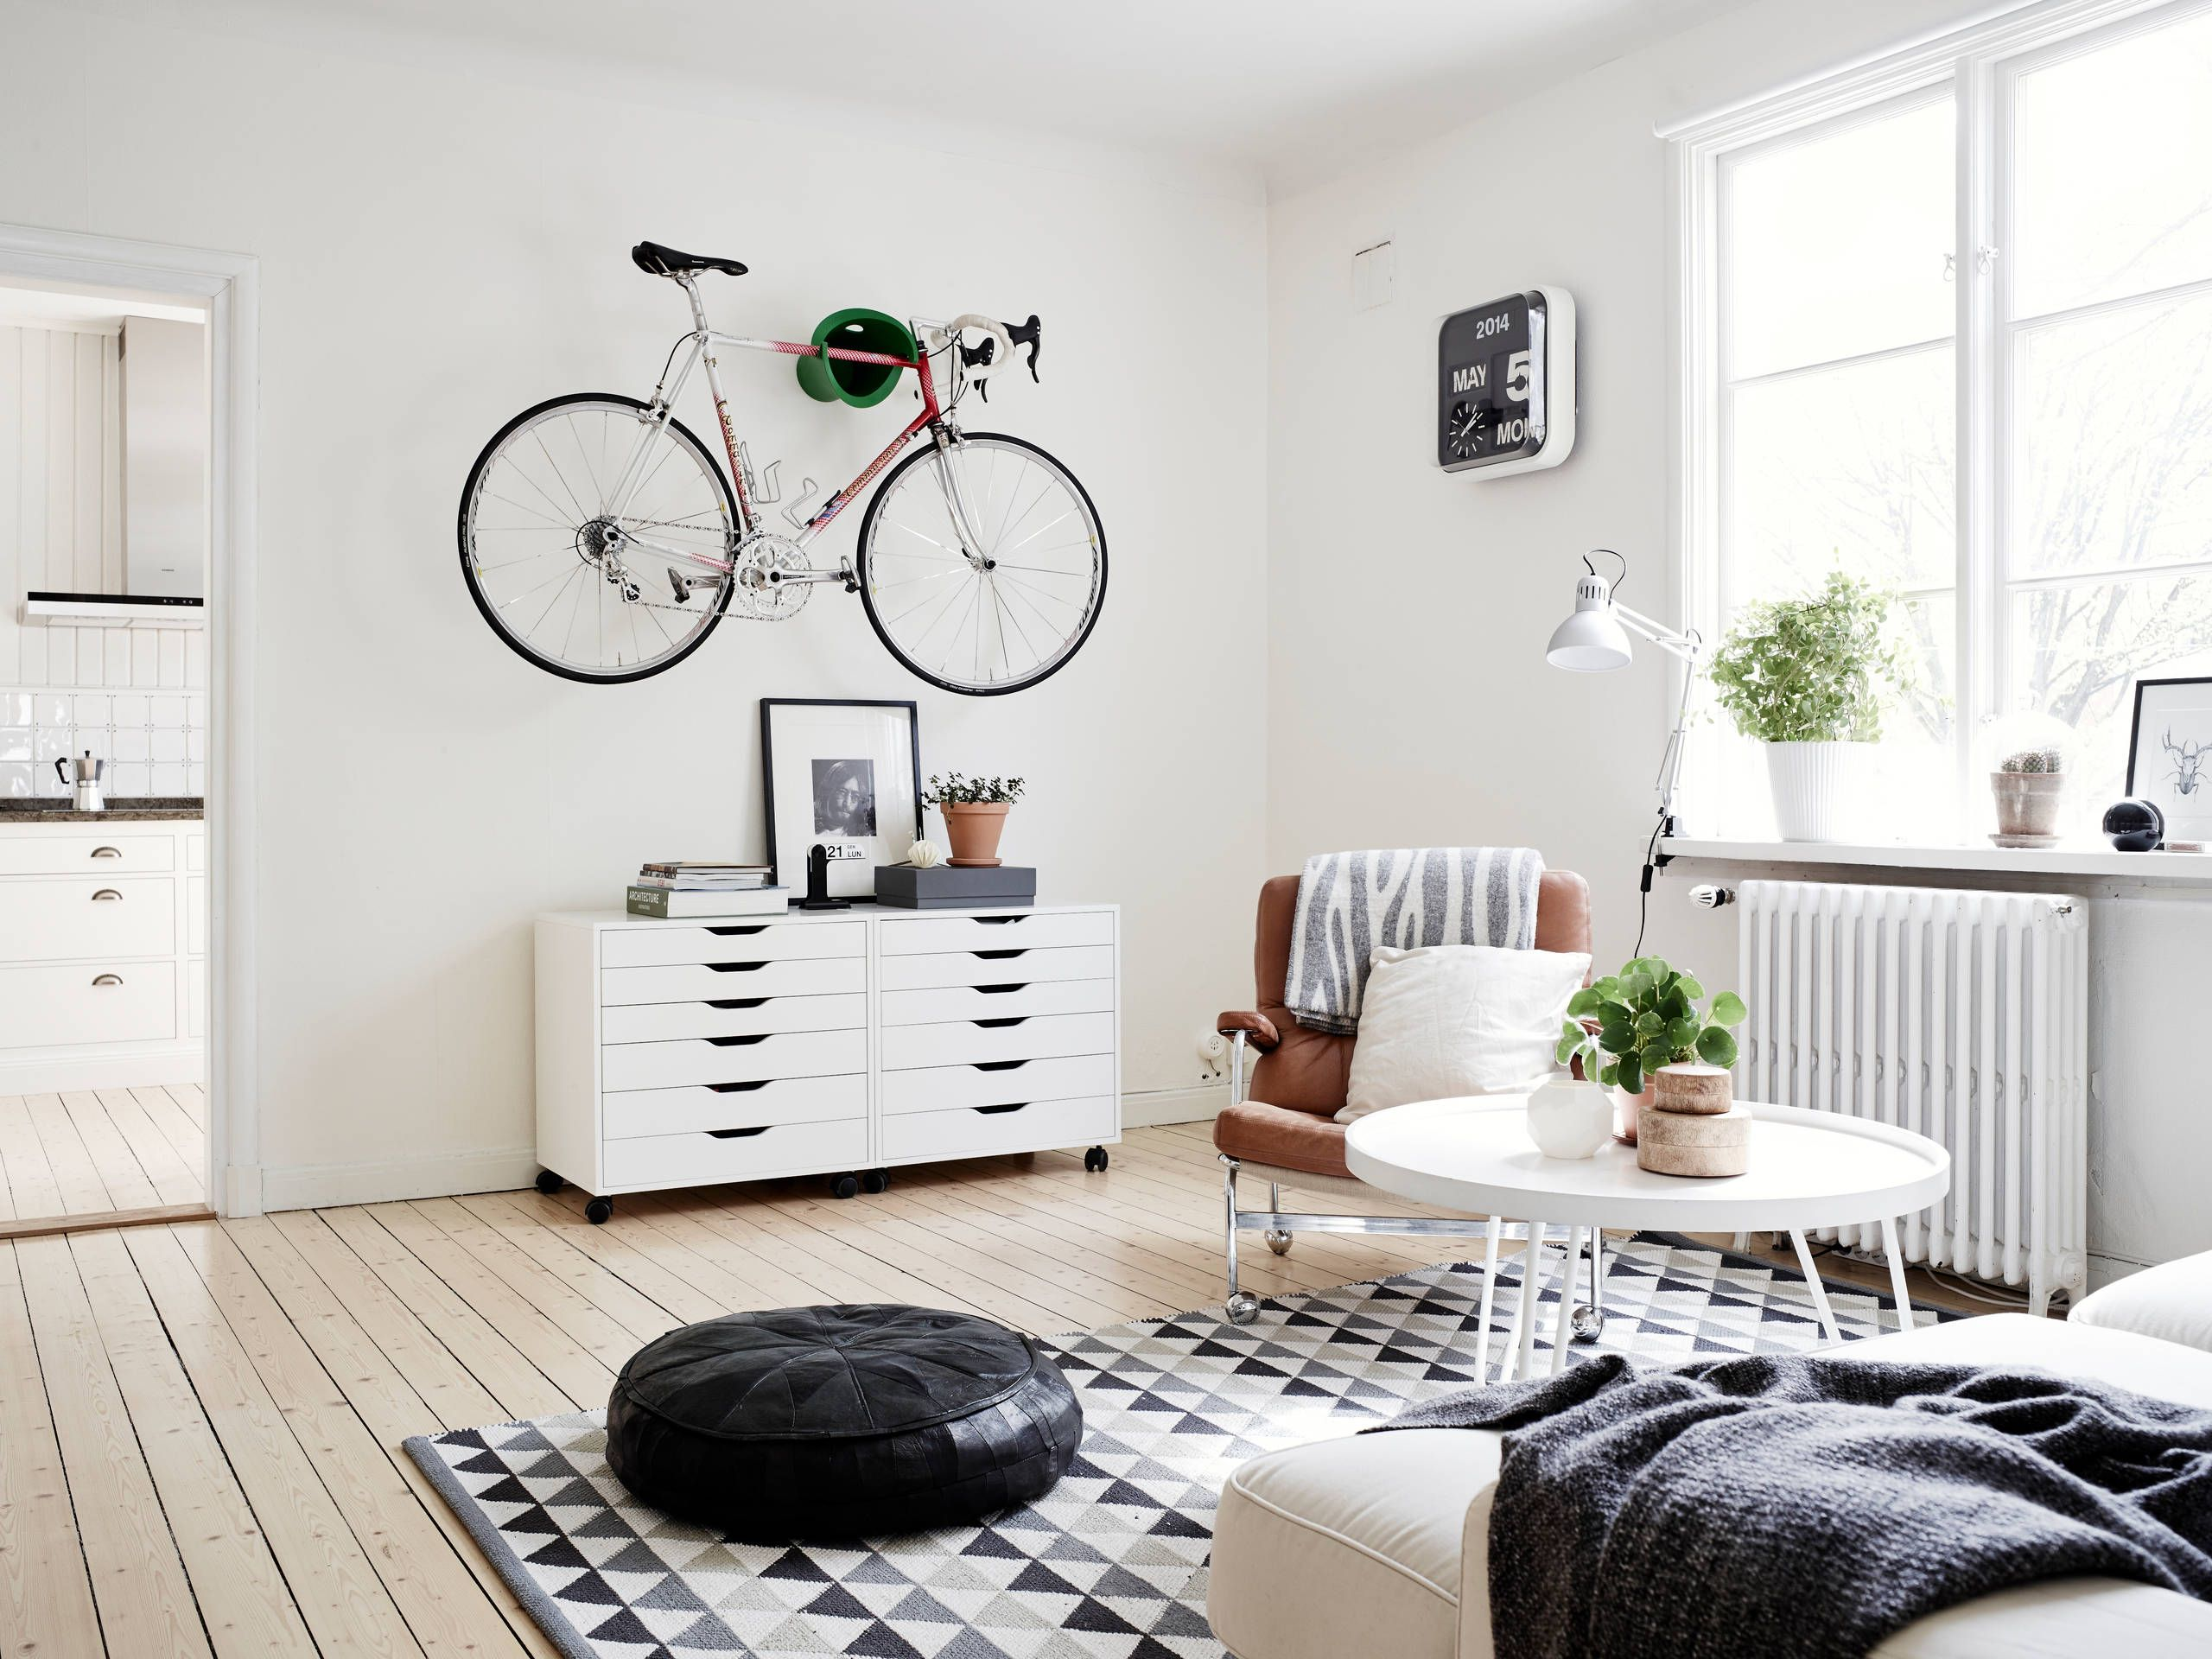 Australia Wonderful Apartment with a Scandinavian Twist